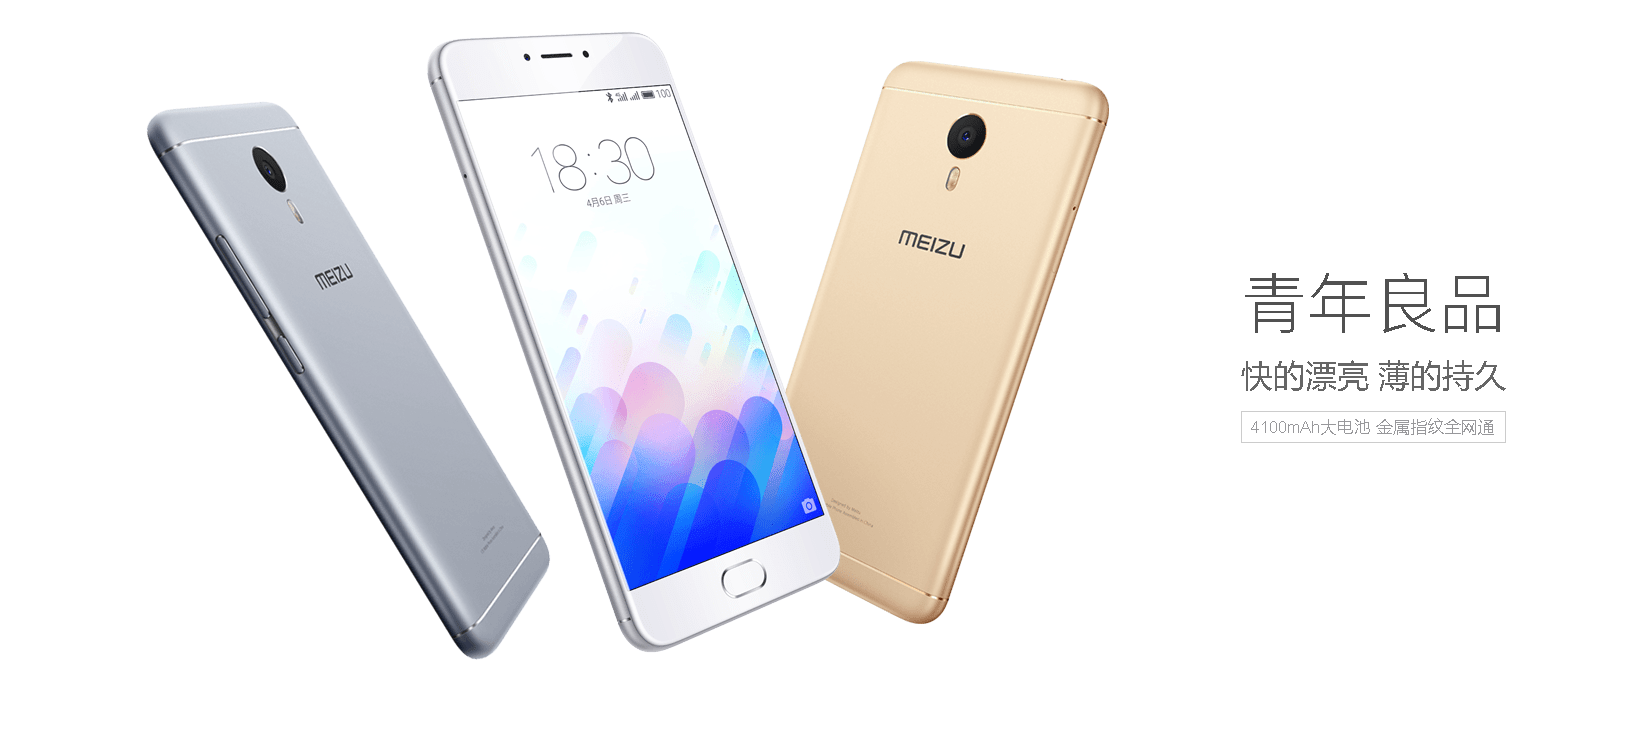 Meizu m3 note用Flyme OS 5.1.3.1 Stableがリリース